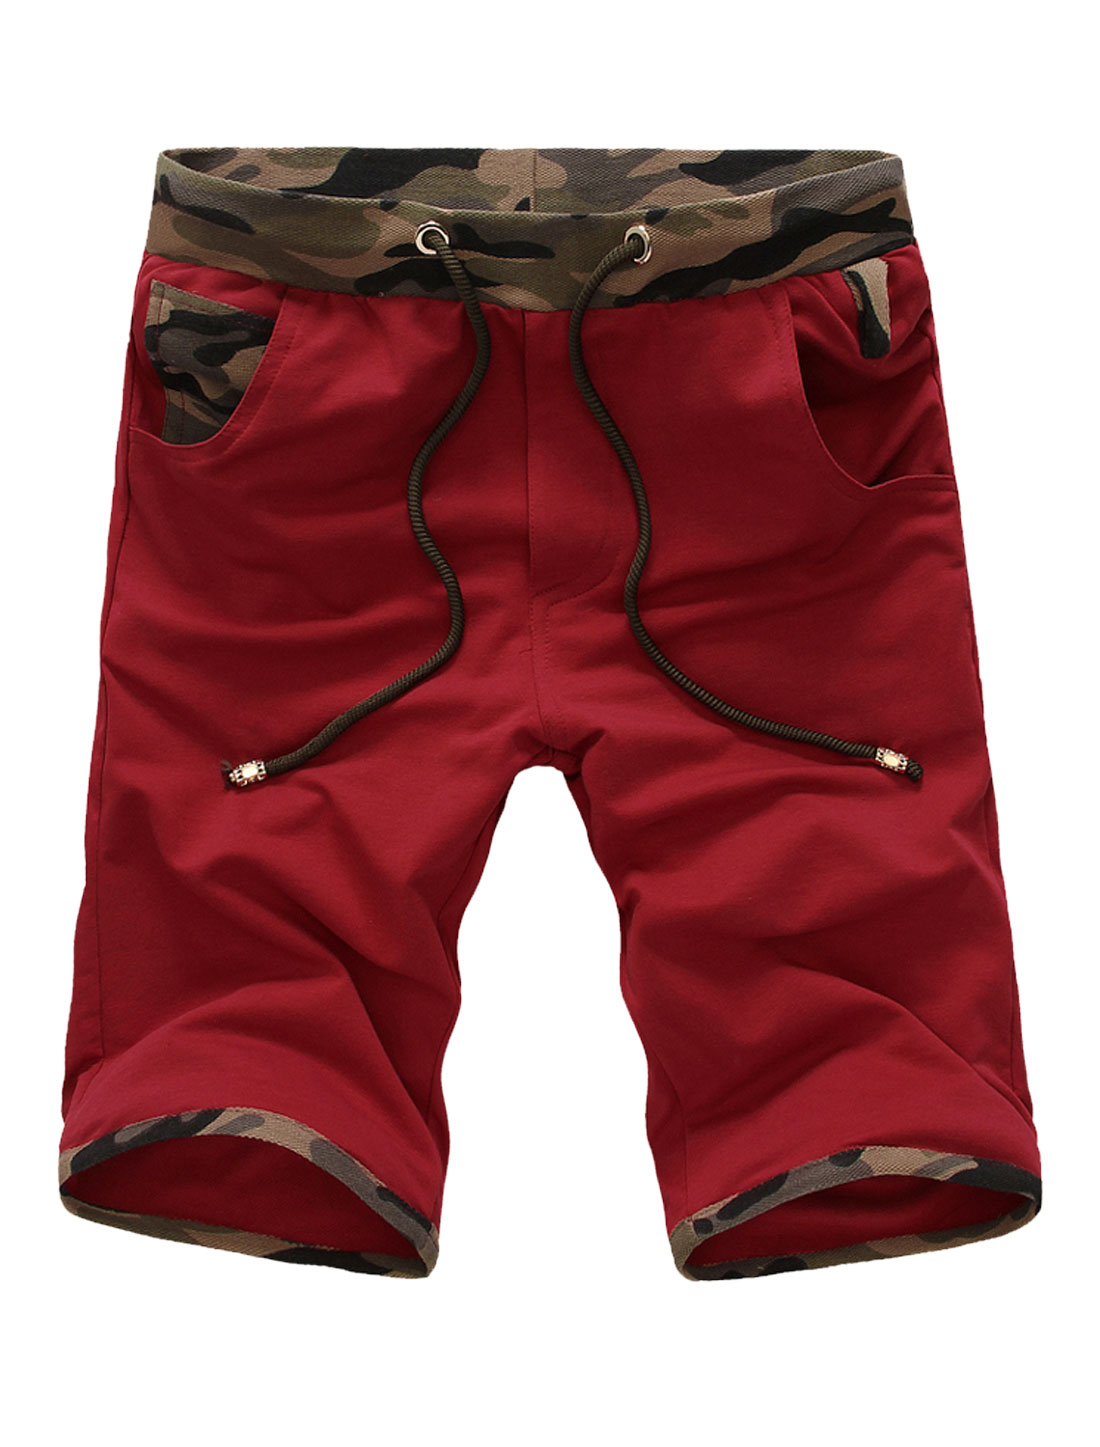 Men Stretchy Waist Panel Camouflage Pattern Casual Shorts Red W30